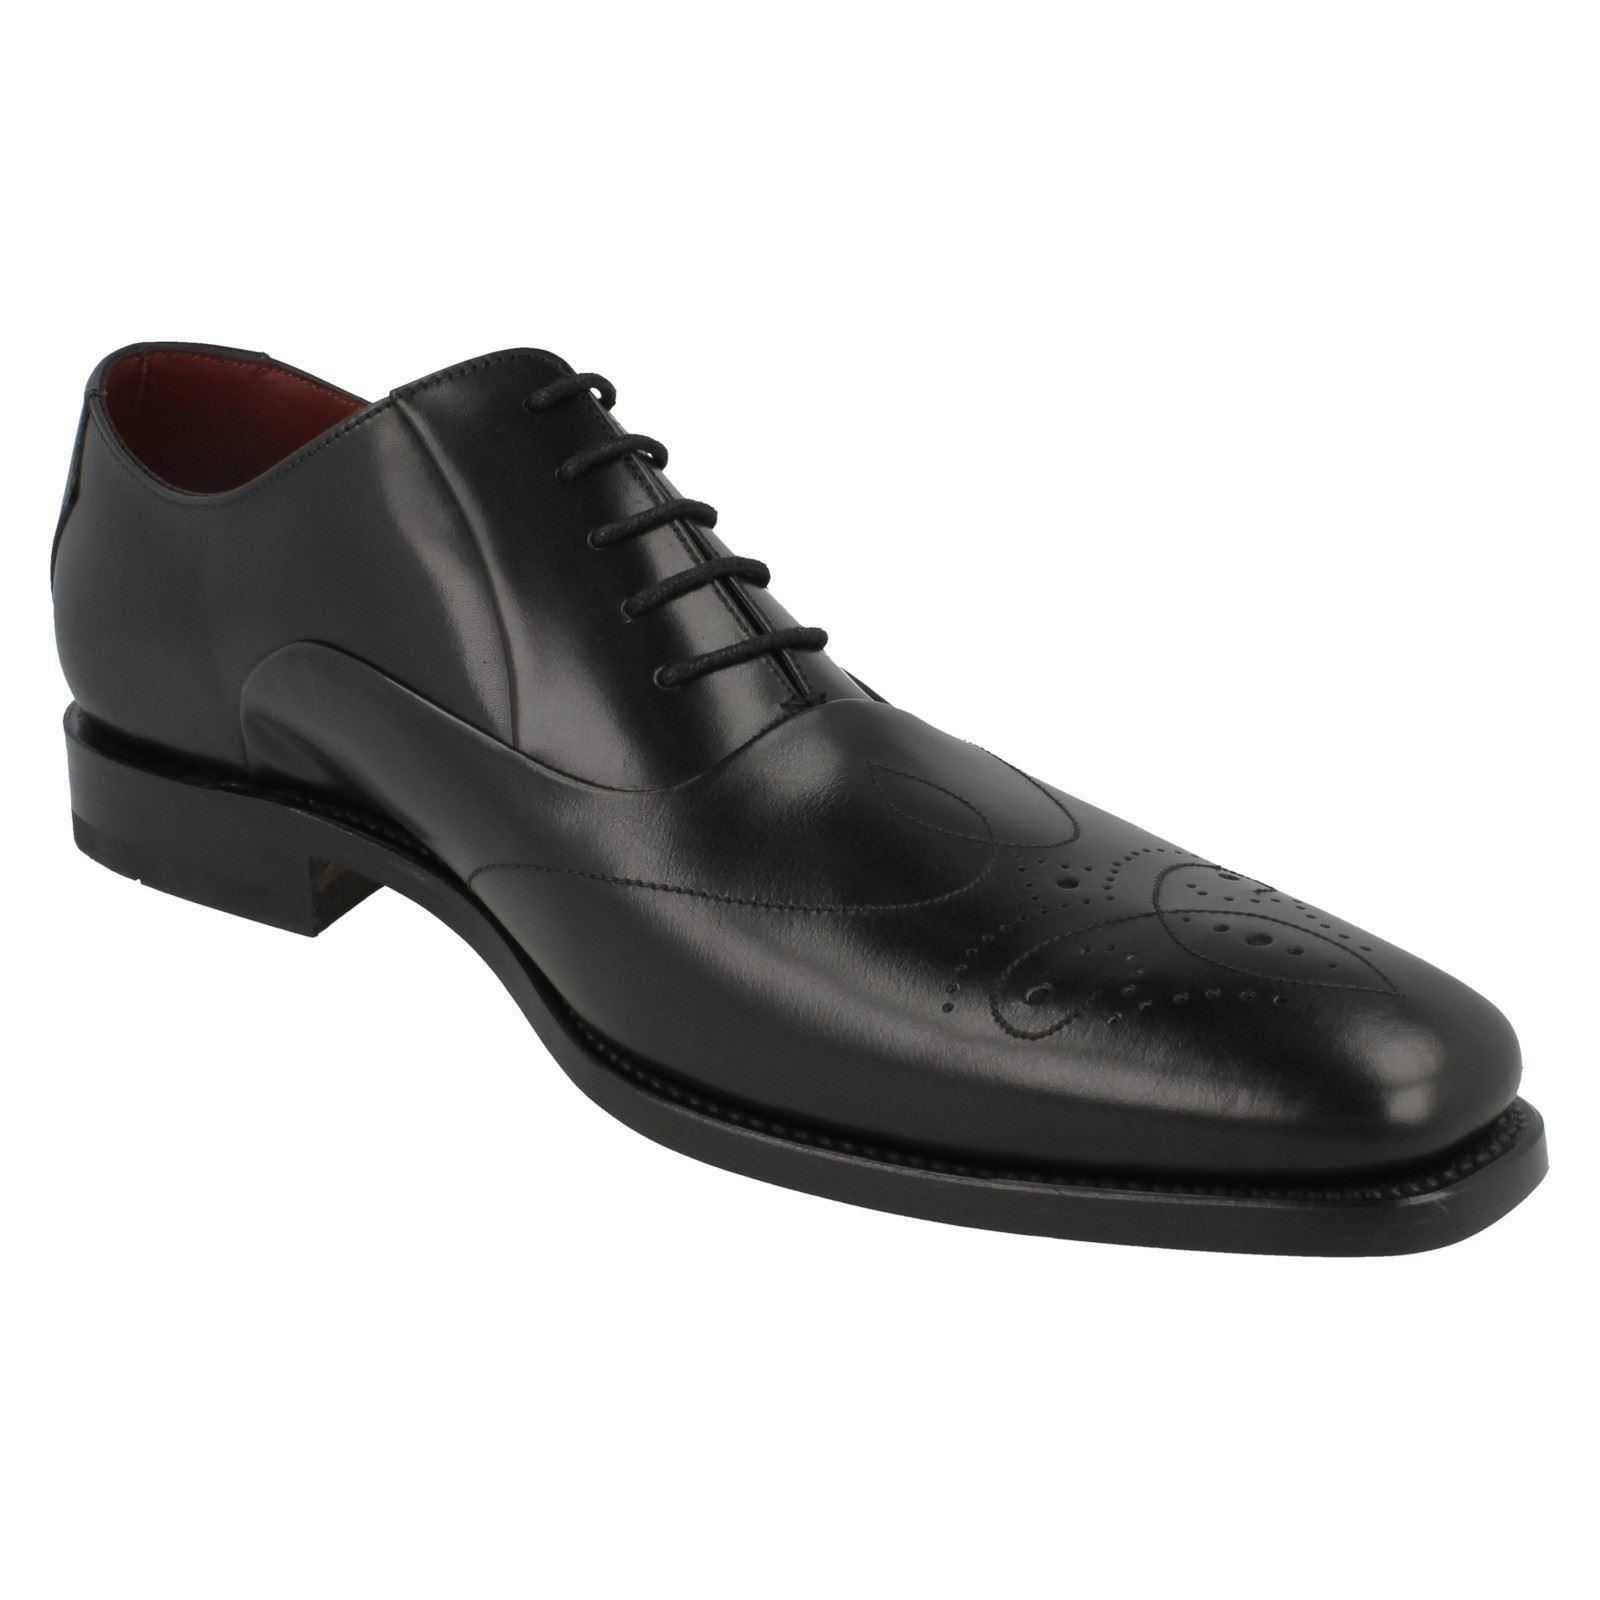 Mens Loake Formal Shoes Shoes Shoes Fitting F Style - Gunny 8b65c0